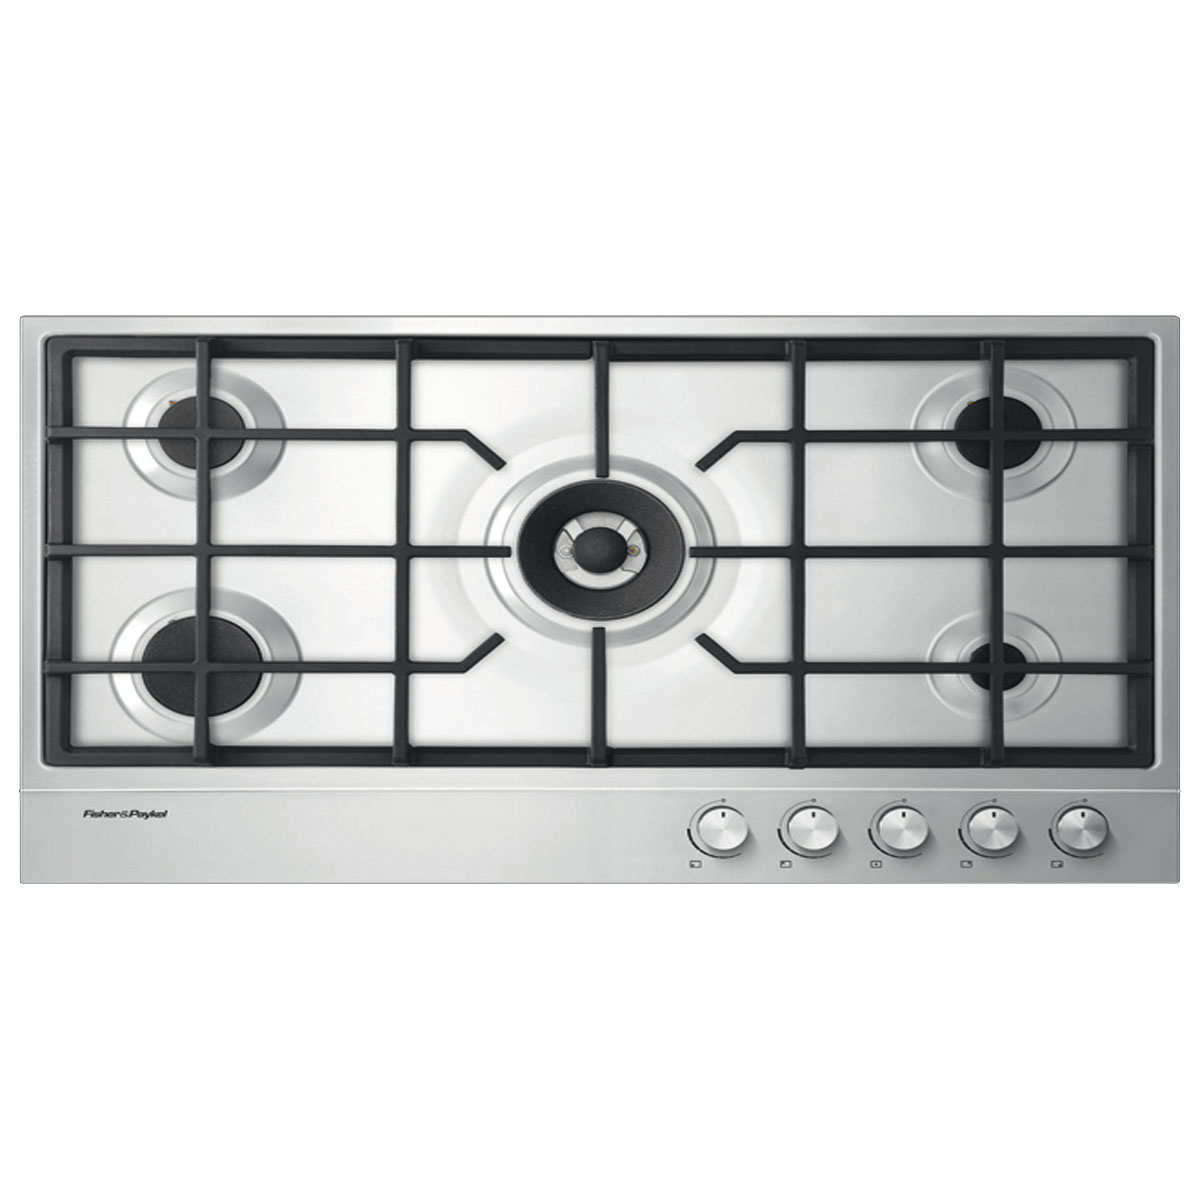 Fisher & Paykel Gas Cooktop CG905DX1